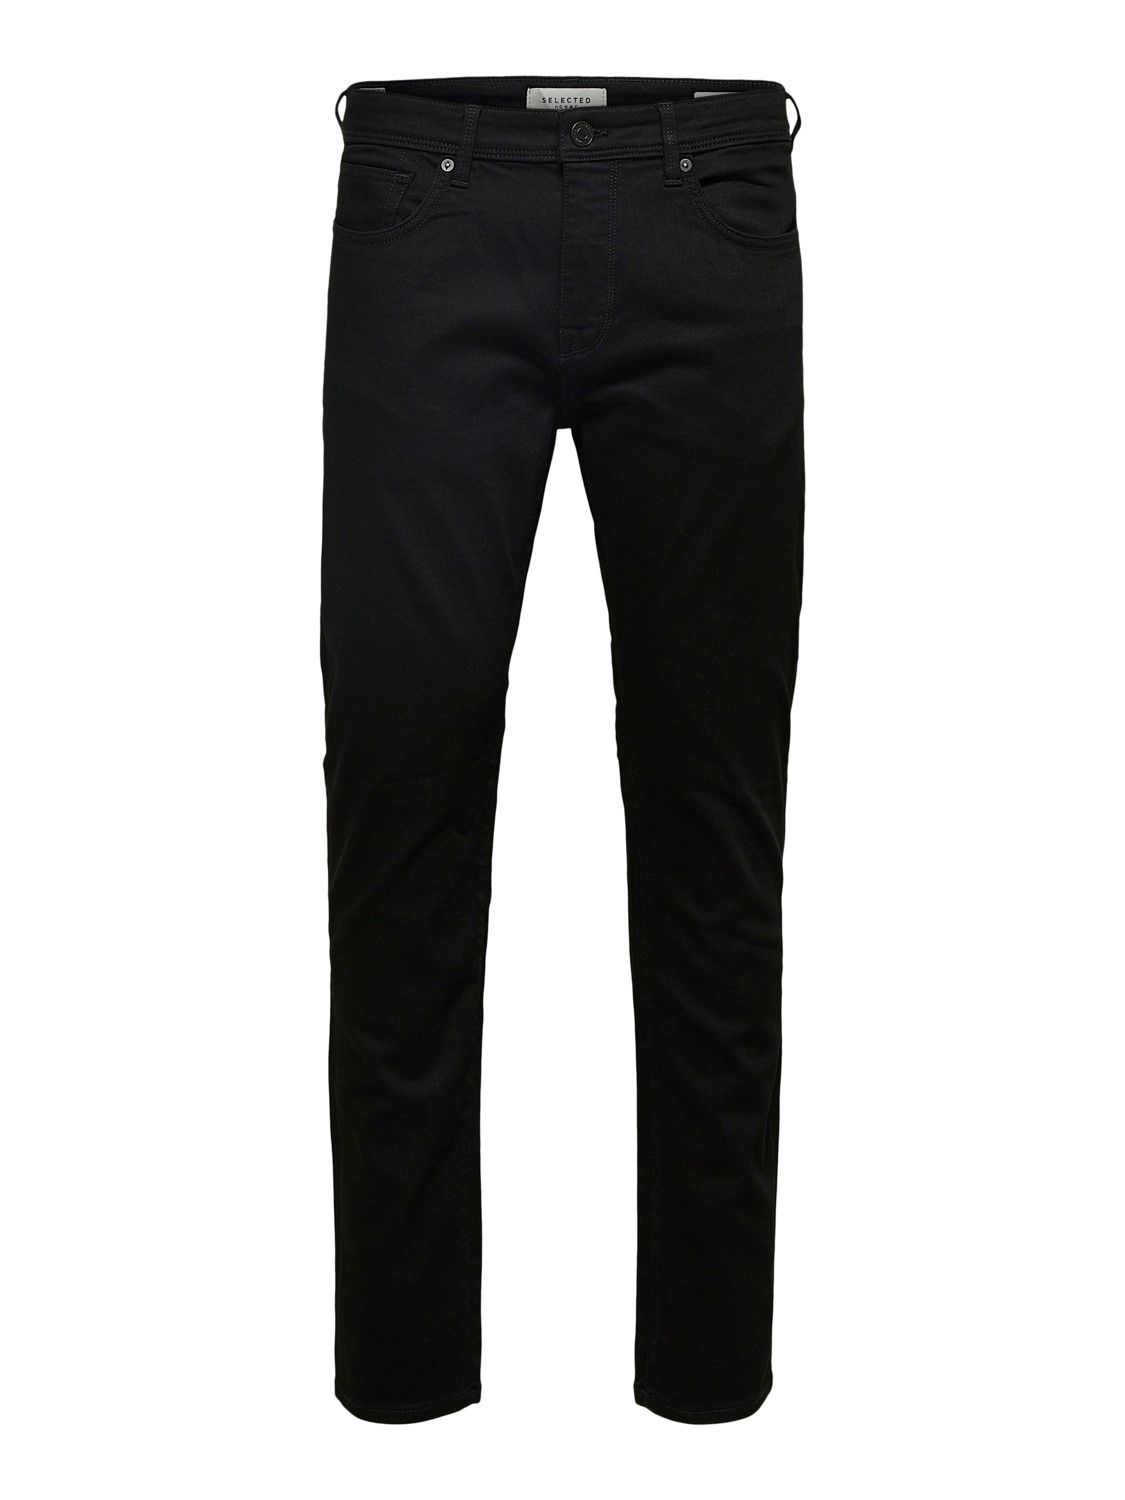 Selected Jeans - Leon 3031 SUPER ST BLACK DENIM | Gate36 Hobro